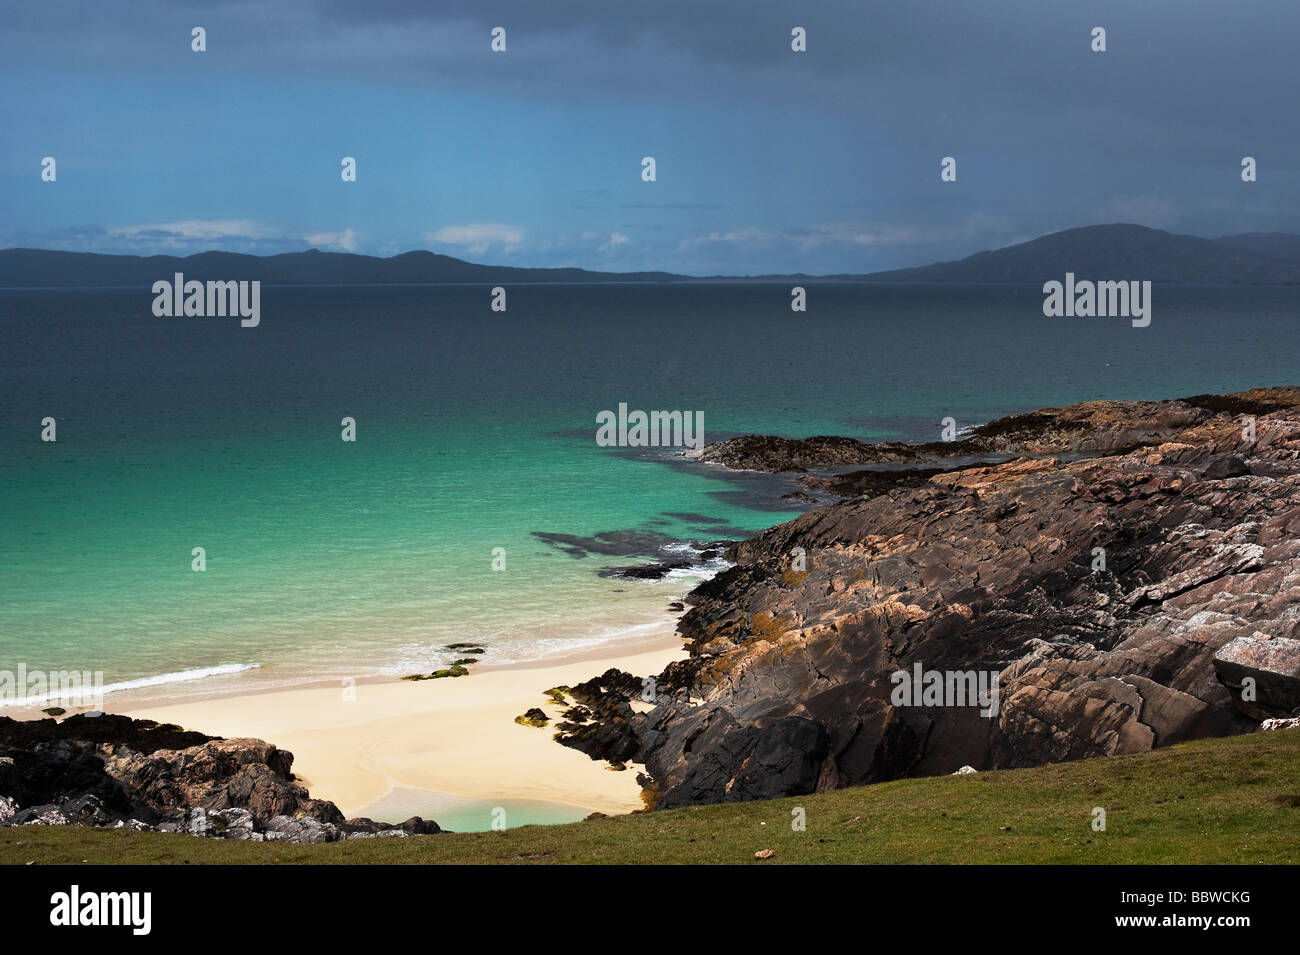 Rain and Storm clouds over Traigh Lar beach, South Harris, Outer Hebrides, Scotland - Stock Image